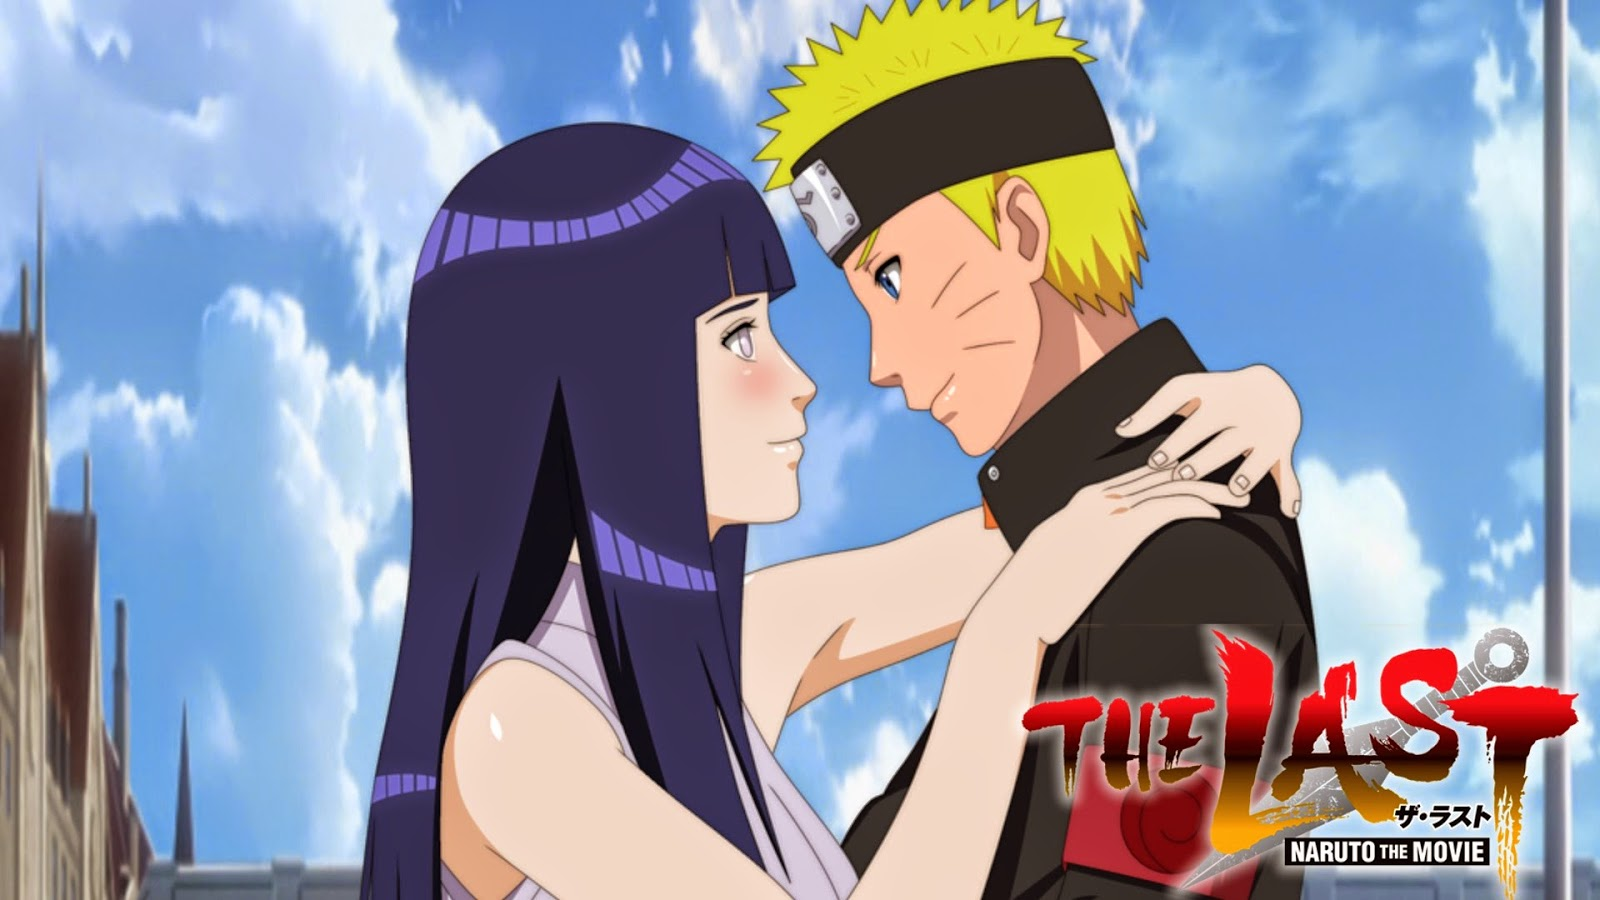 Naruto Shippuden The Movie 7: The Last Subtitle Indonesia 360p